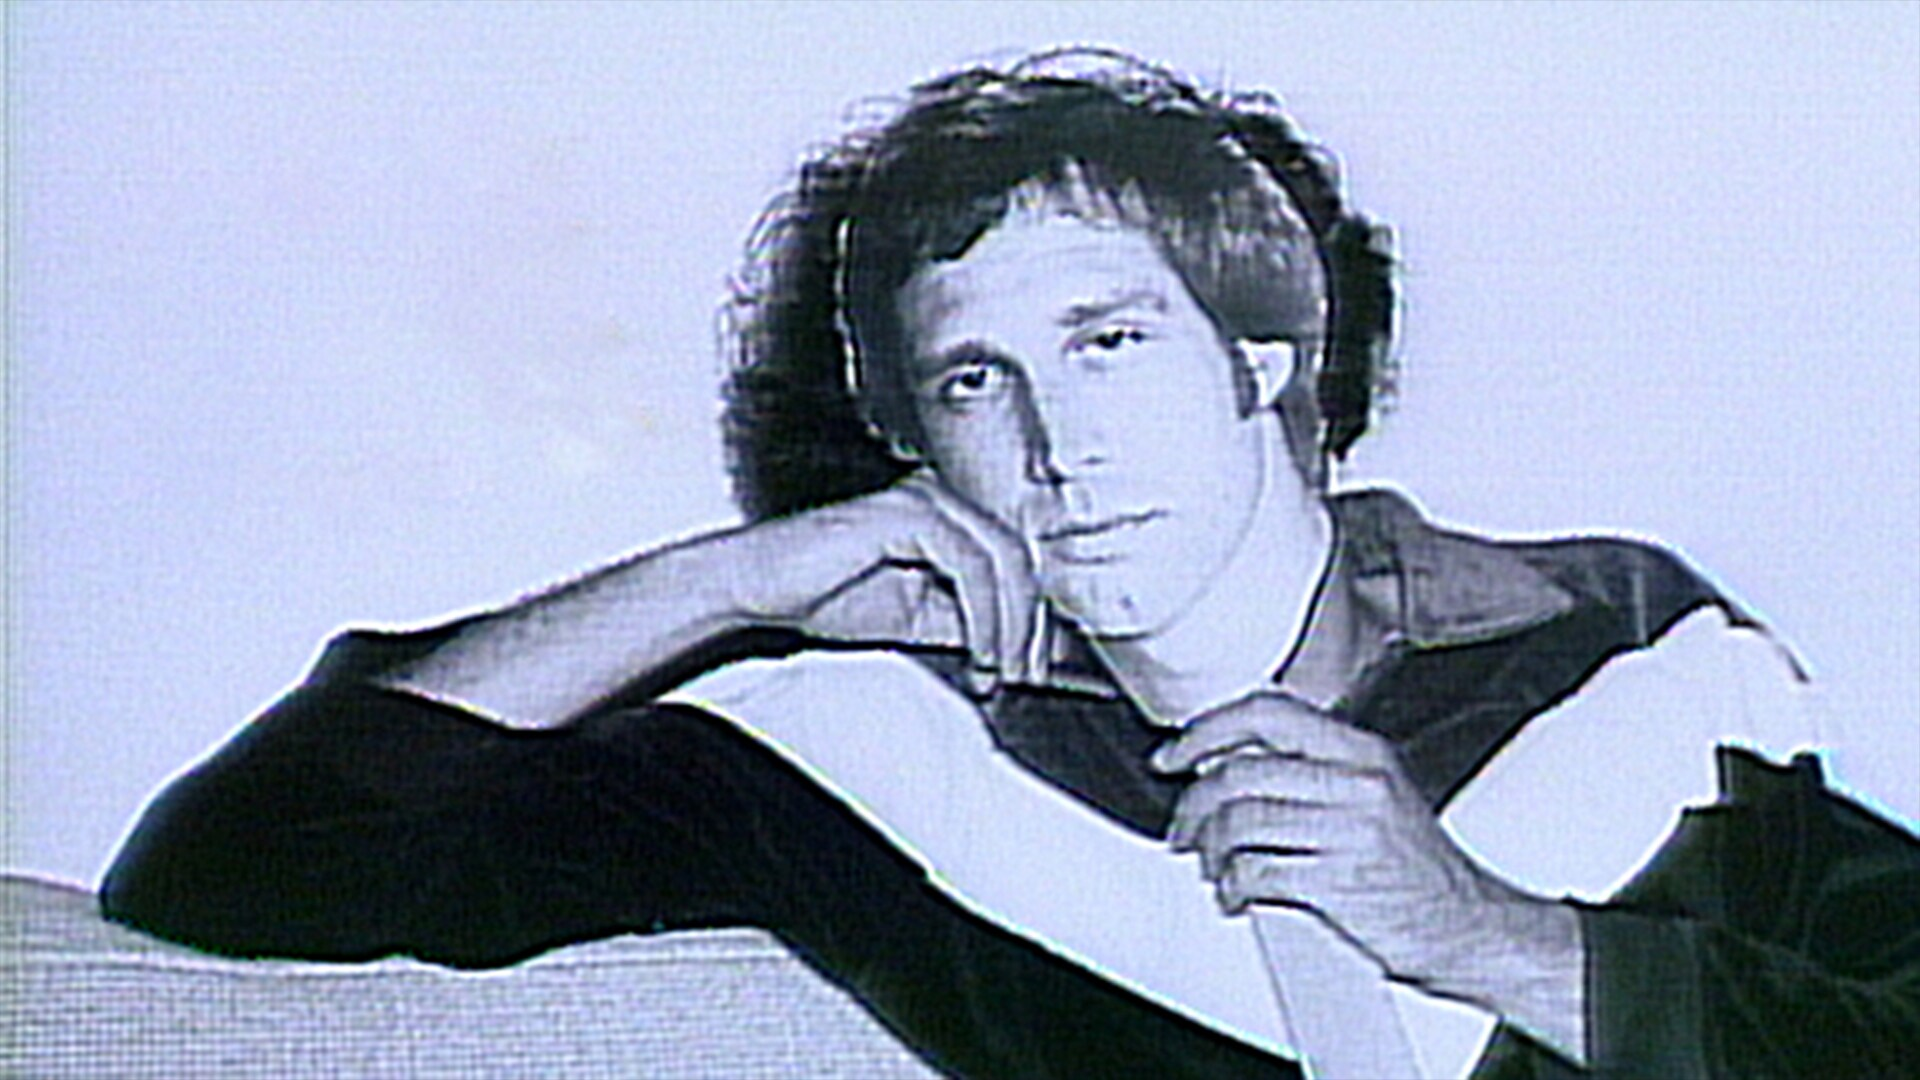 Chevy Chase: September 25, 1982